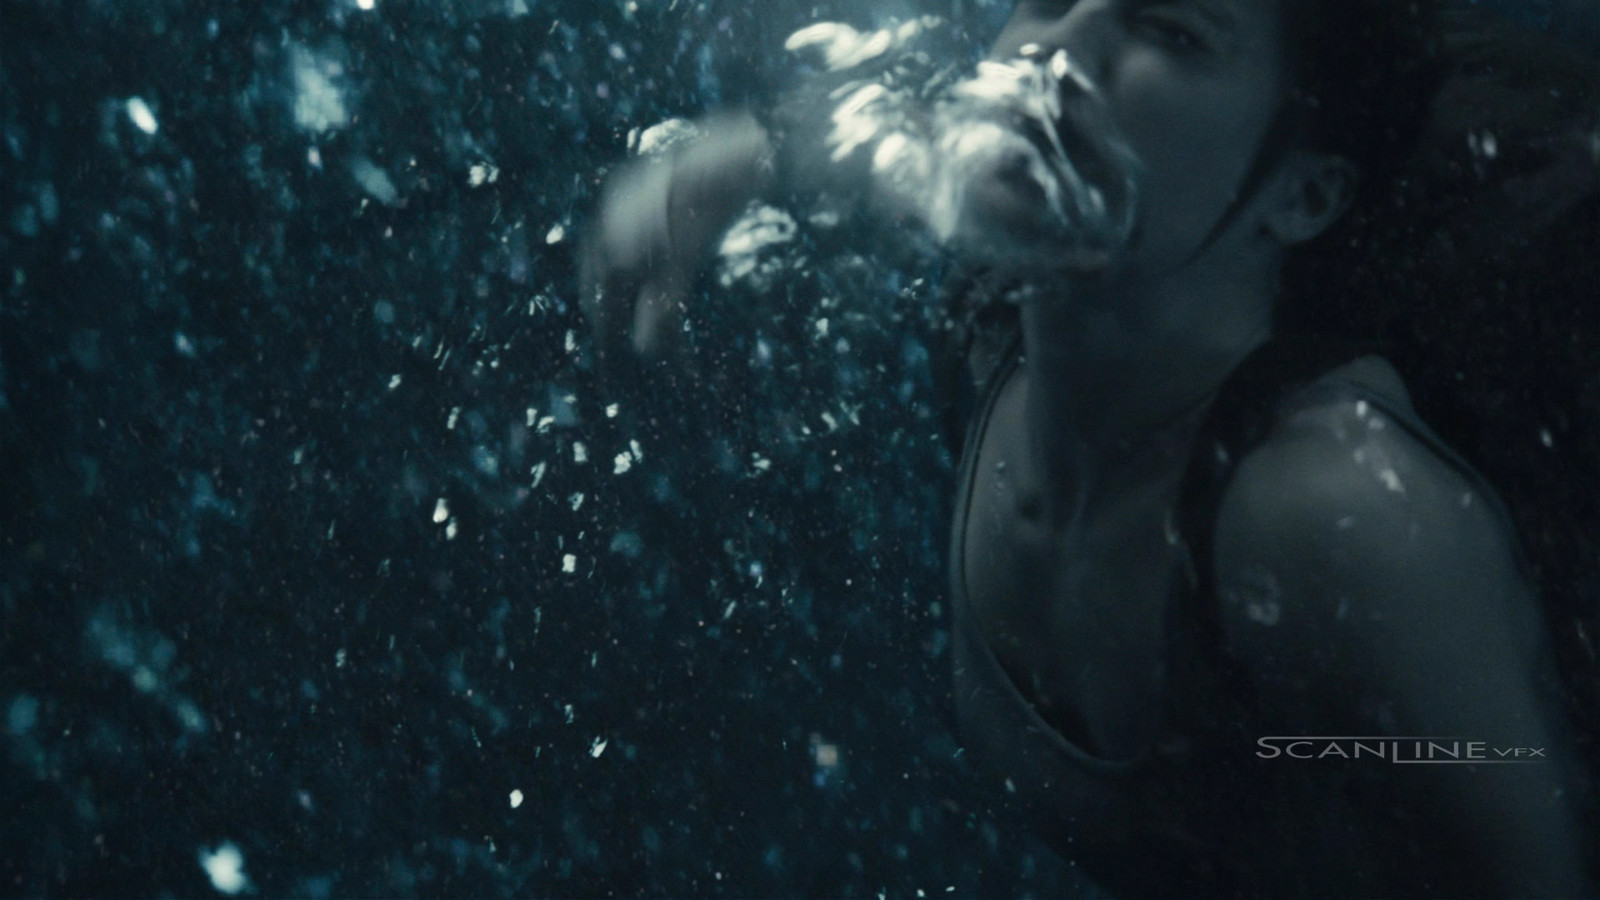 Compositing and integration work I have done in 2018 at Scanline VFX, as a Compositor. Featuring: Tomb Raider.  Green Screen + Full CG Ocean Integration + 2D Elements.